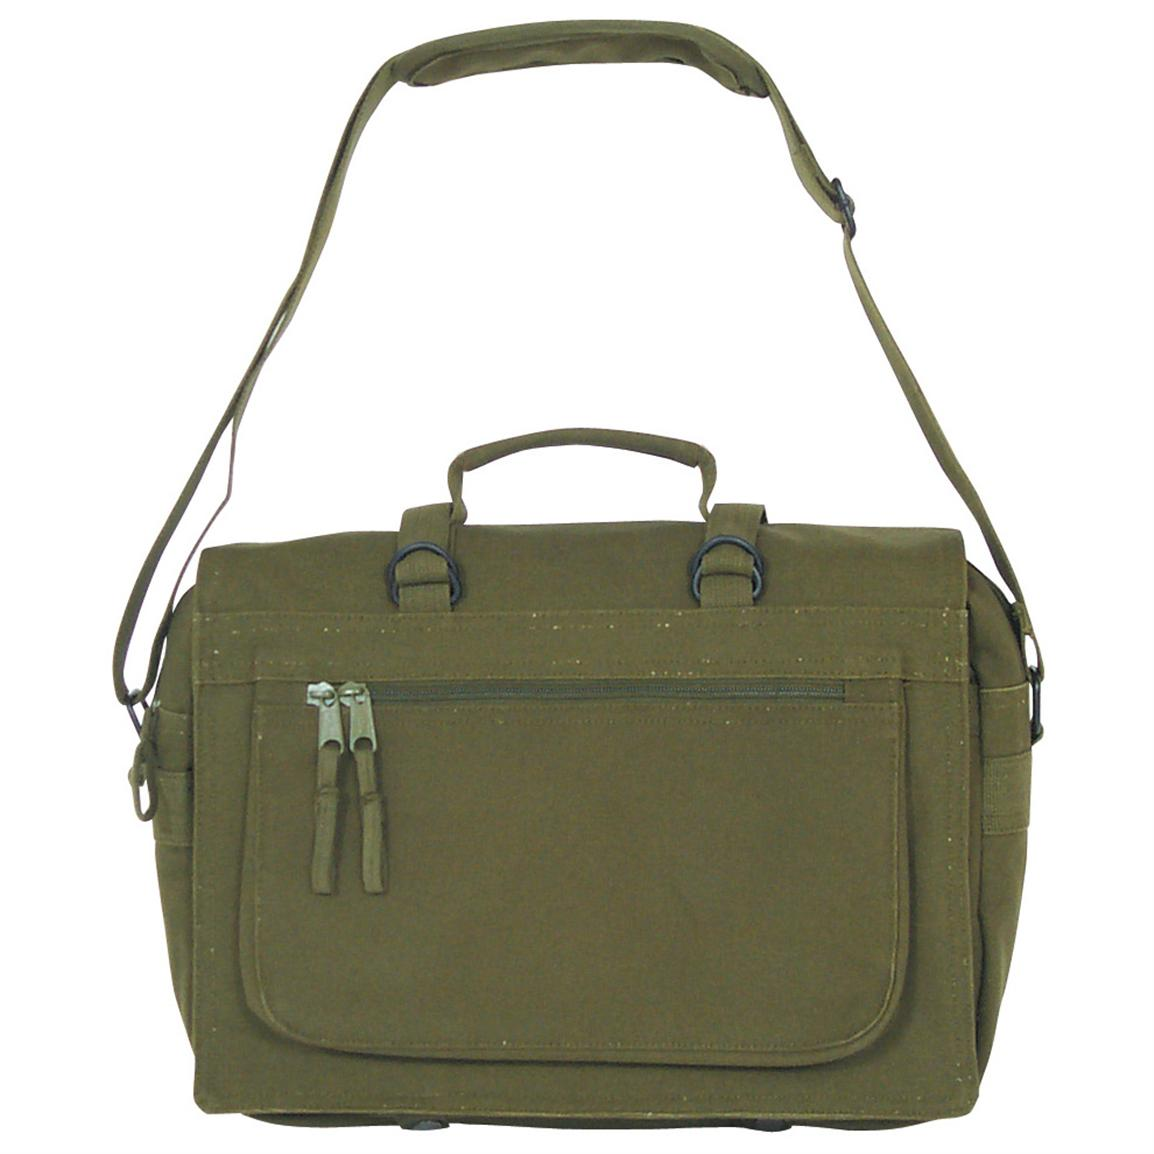 Fox Outdoor™ Ivy Leaguer Shoulder Bag, Olive Drab